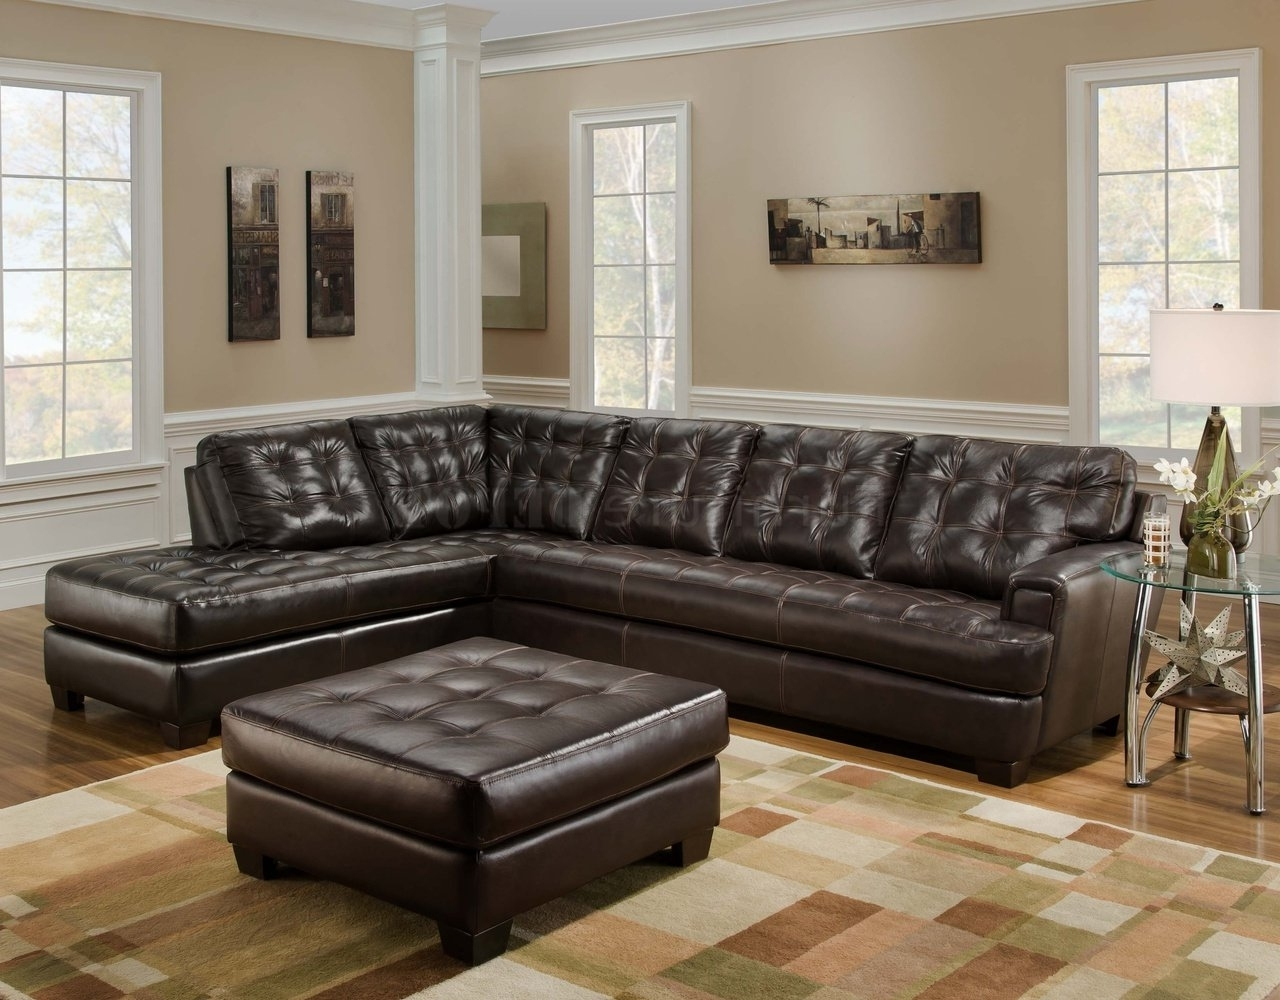 Dark Brown Leather Tufted Sectional Chaise Lounge Sofa With In Current Leather Sectionals With Chaise And Ottoman (View 3 of 15)